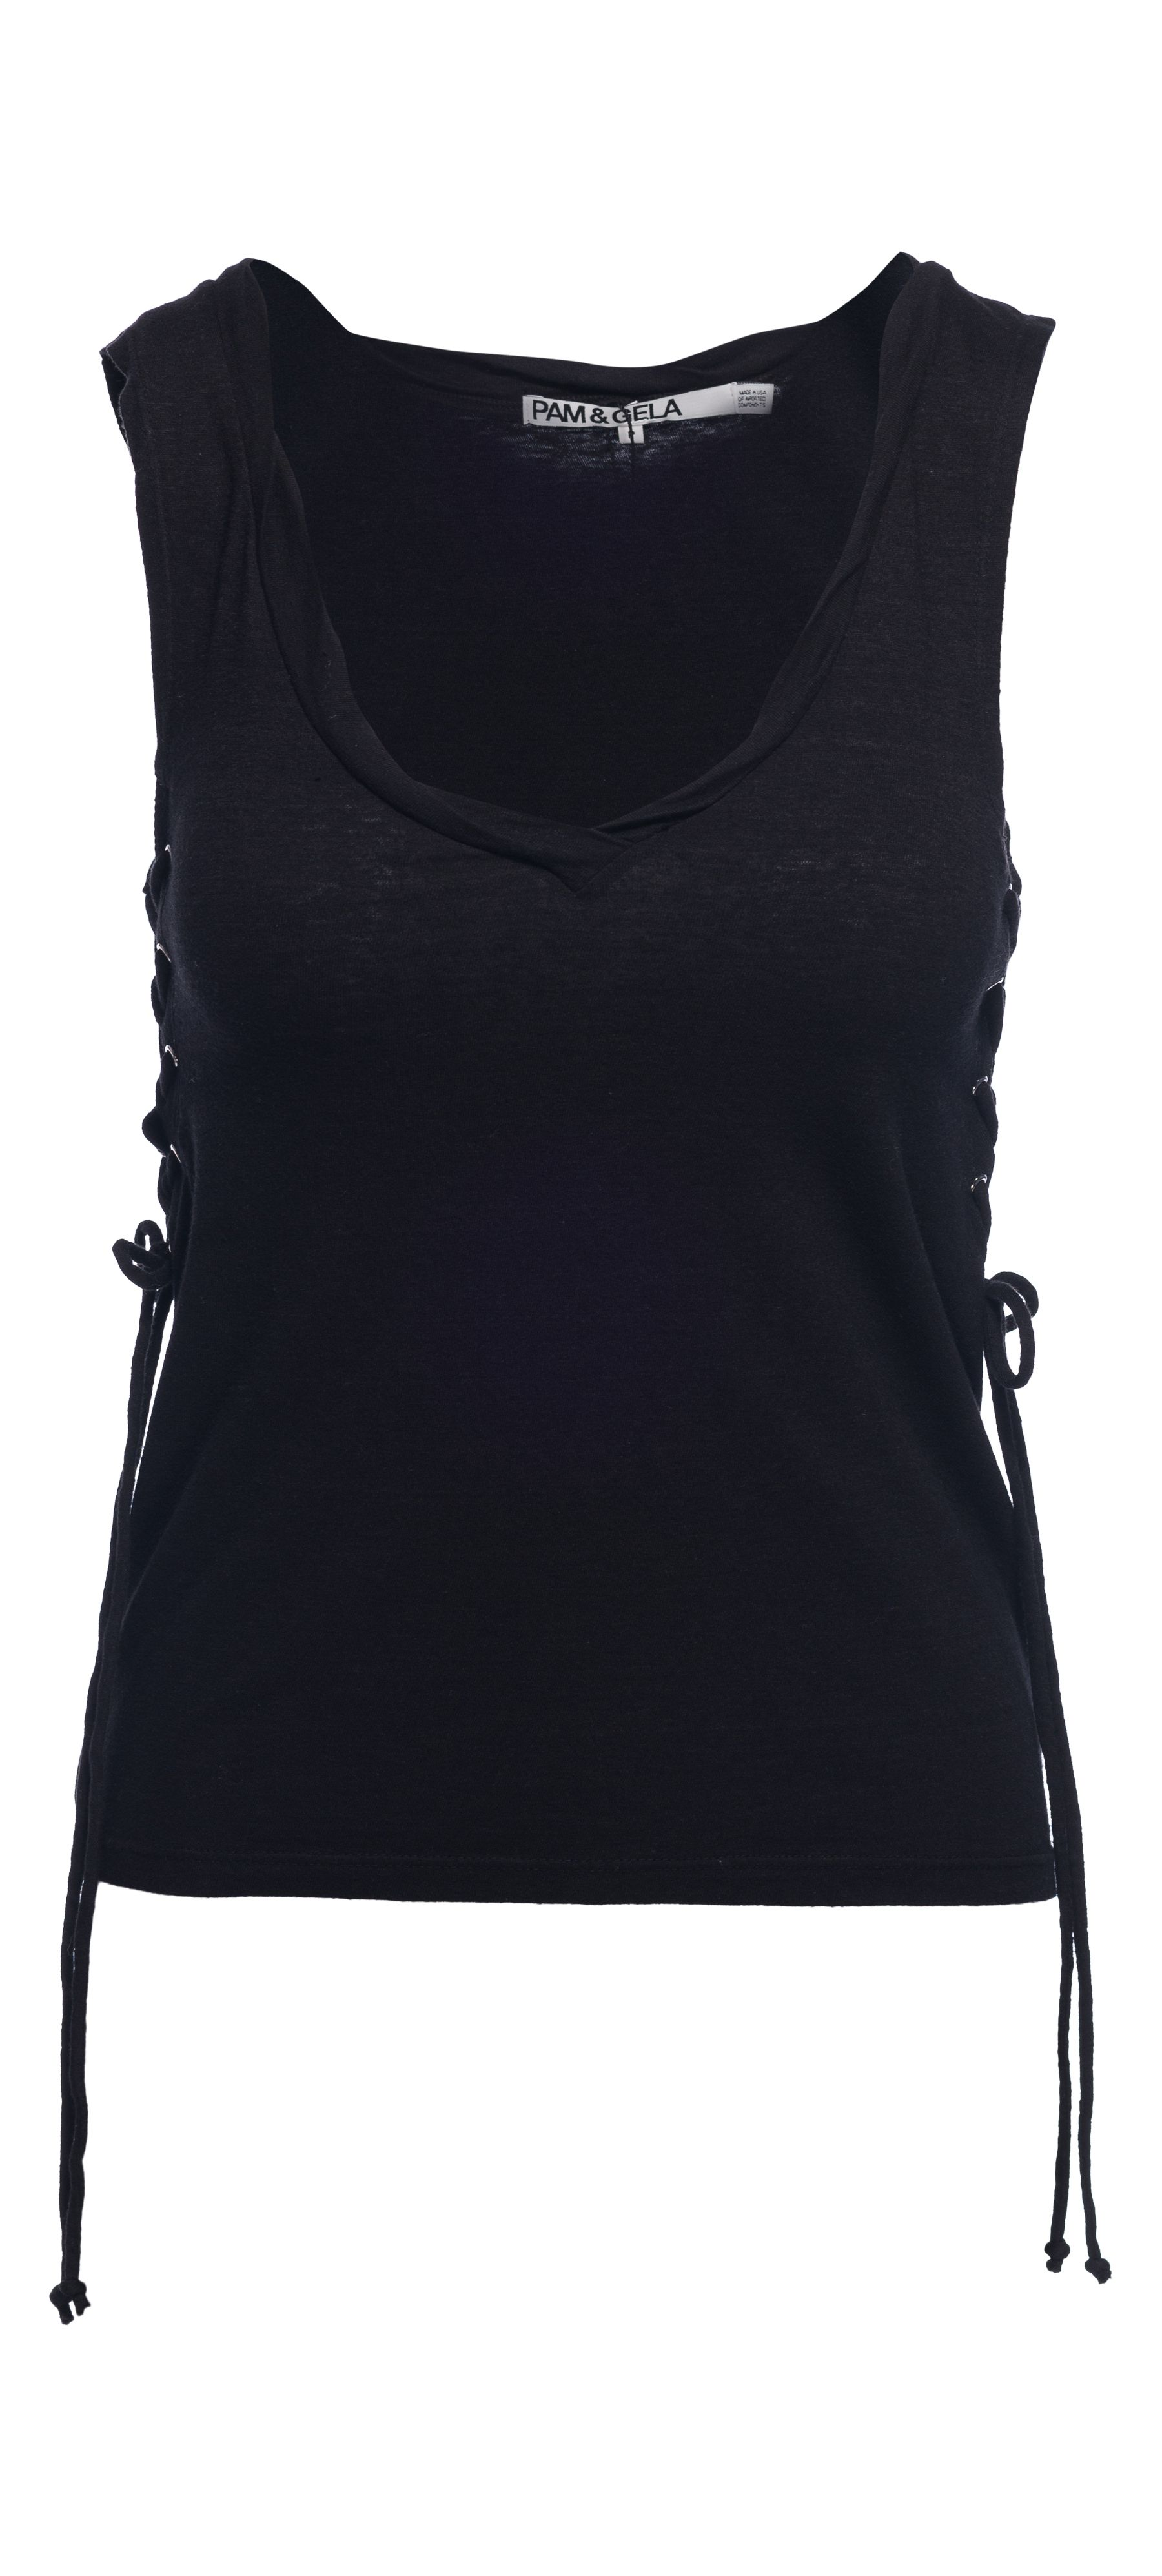 Pam & Gela Side Lace Up V-Neck in Black / Manage Products / Catalog / Magento Admin